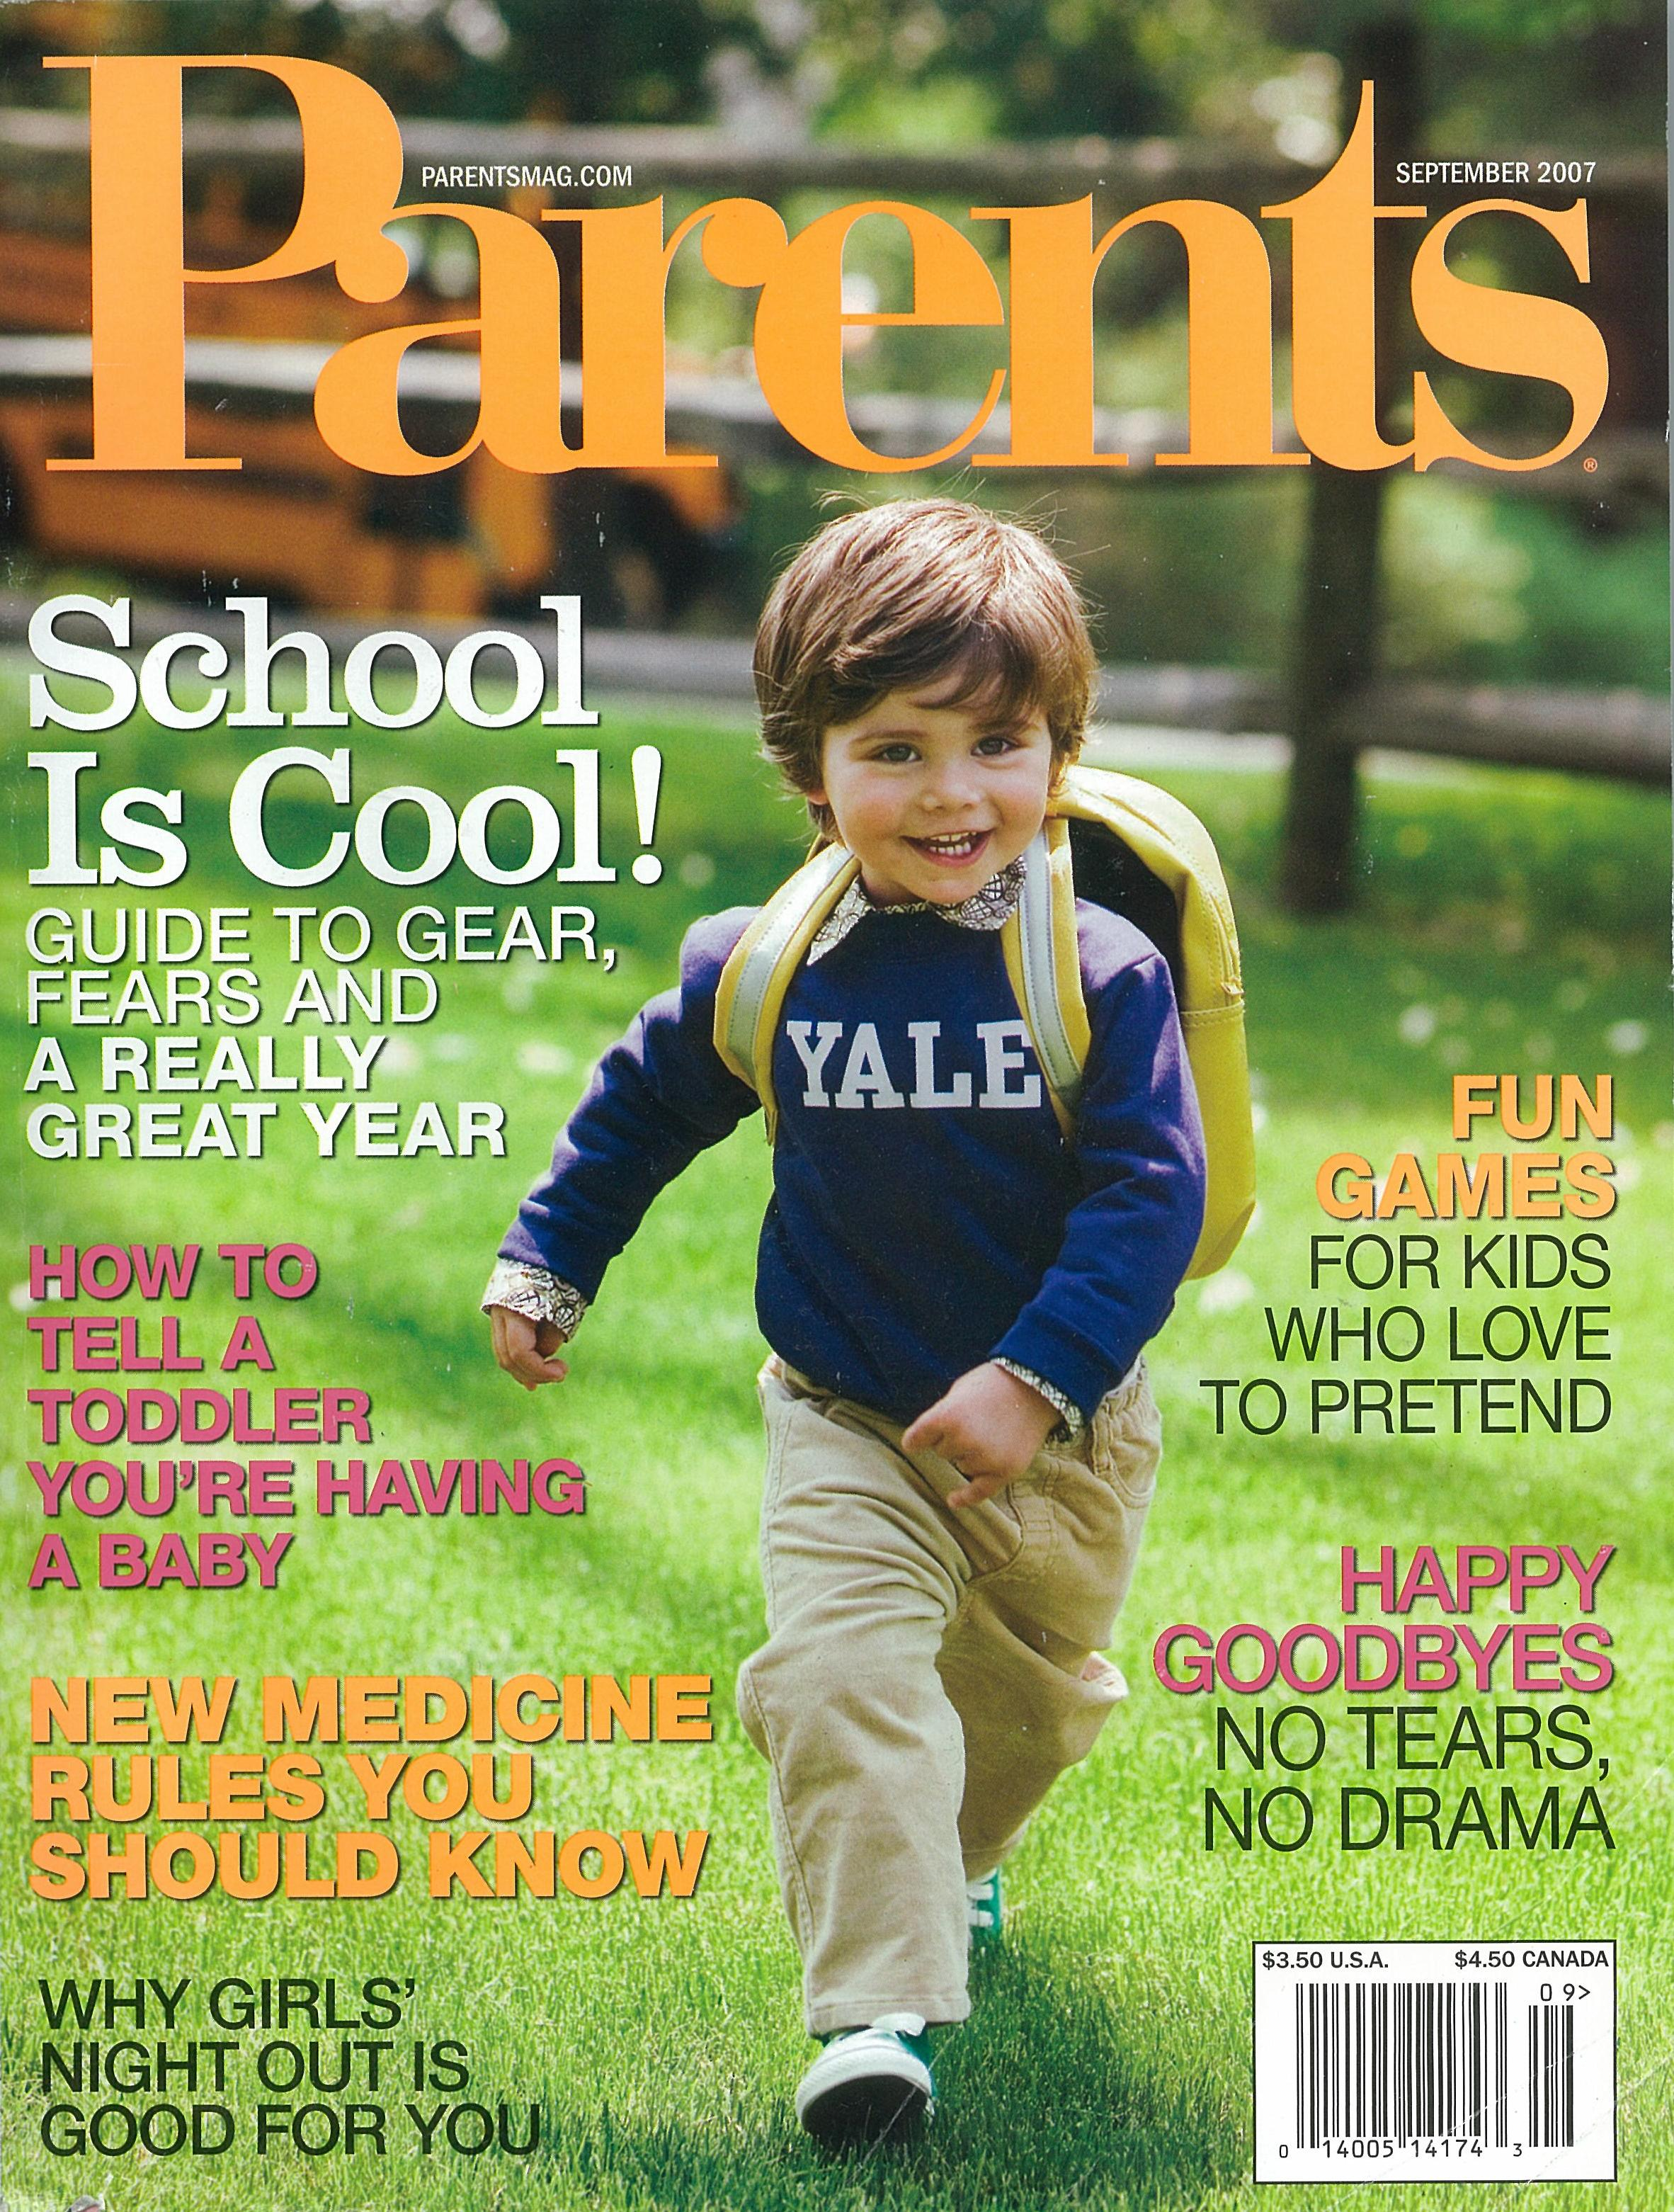 parentsmagazinecovercontest mylitter one deal at a time